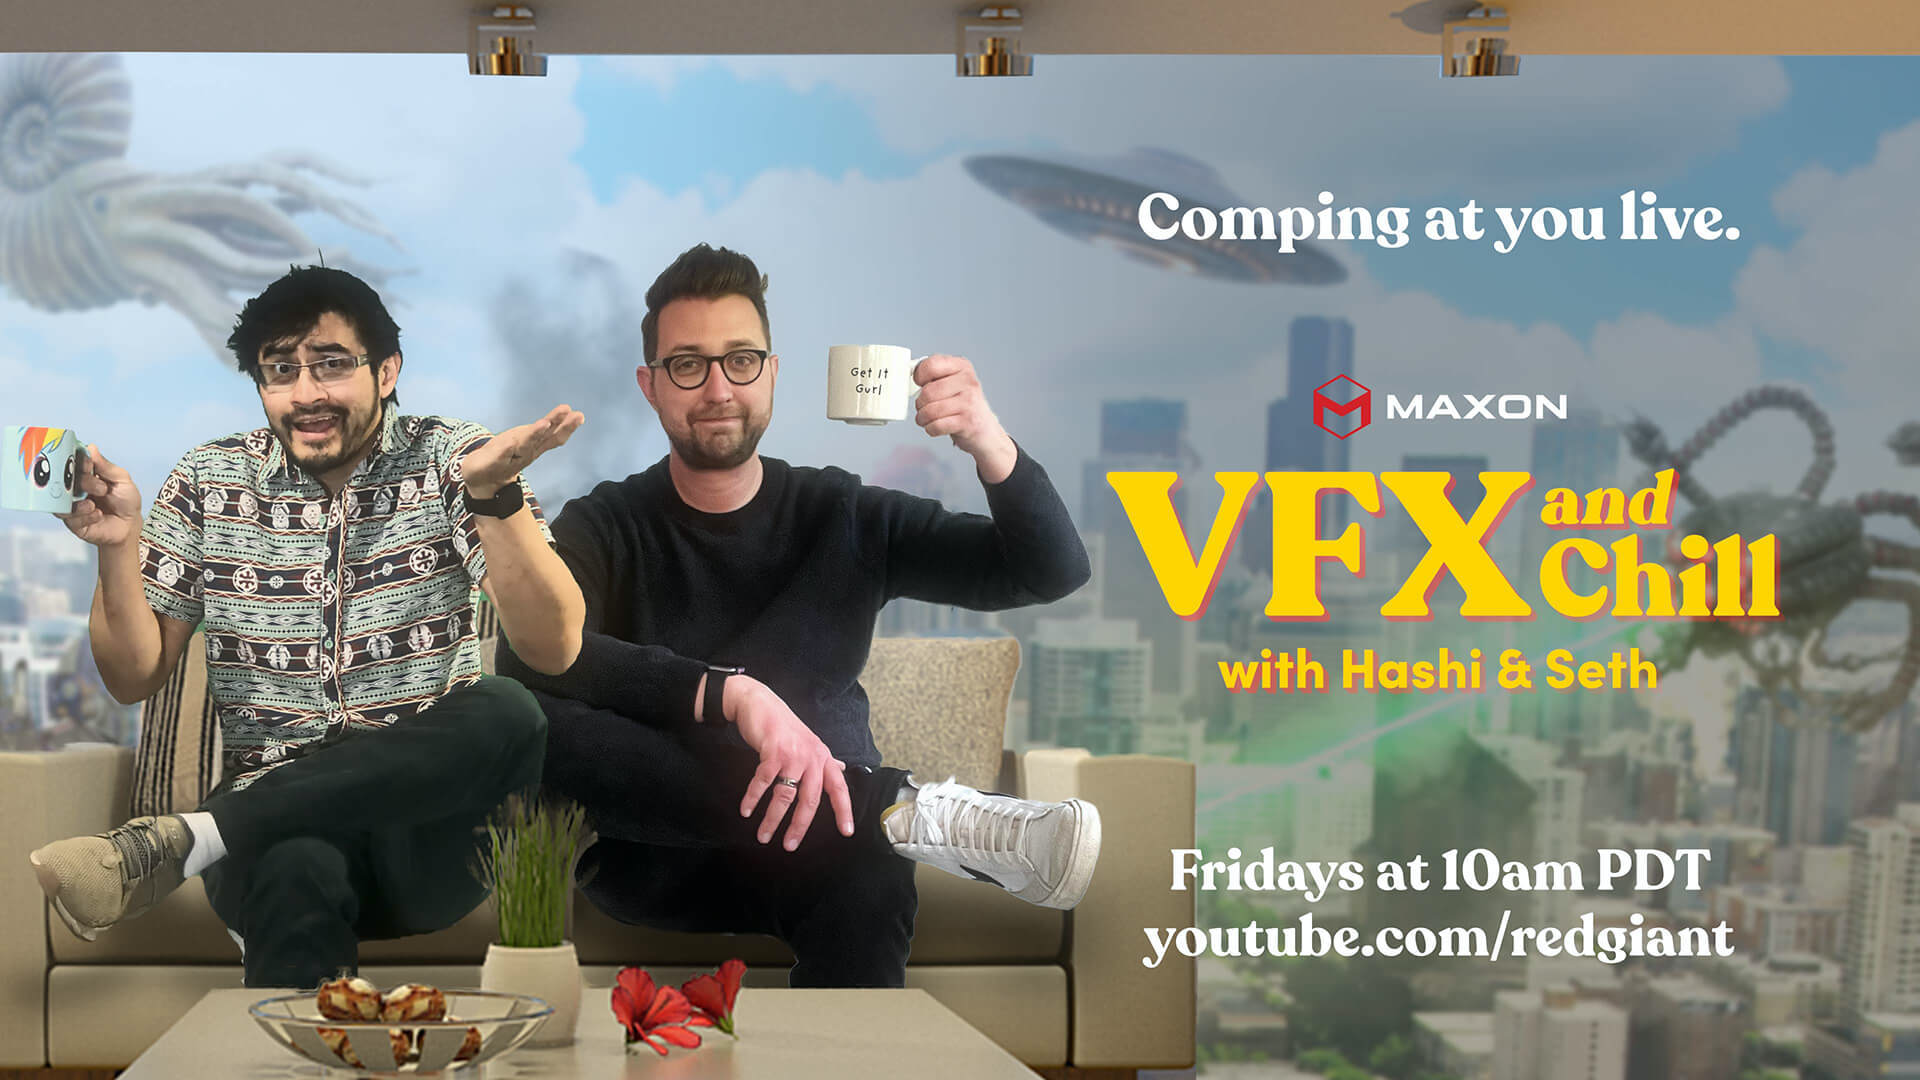 Weekly Live Talk Show Focused on VFX image